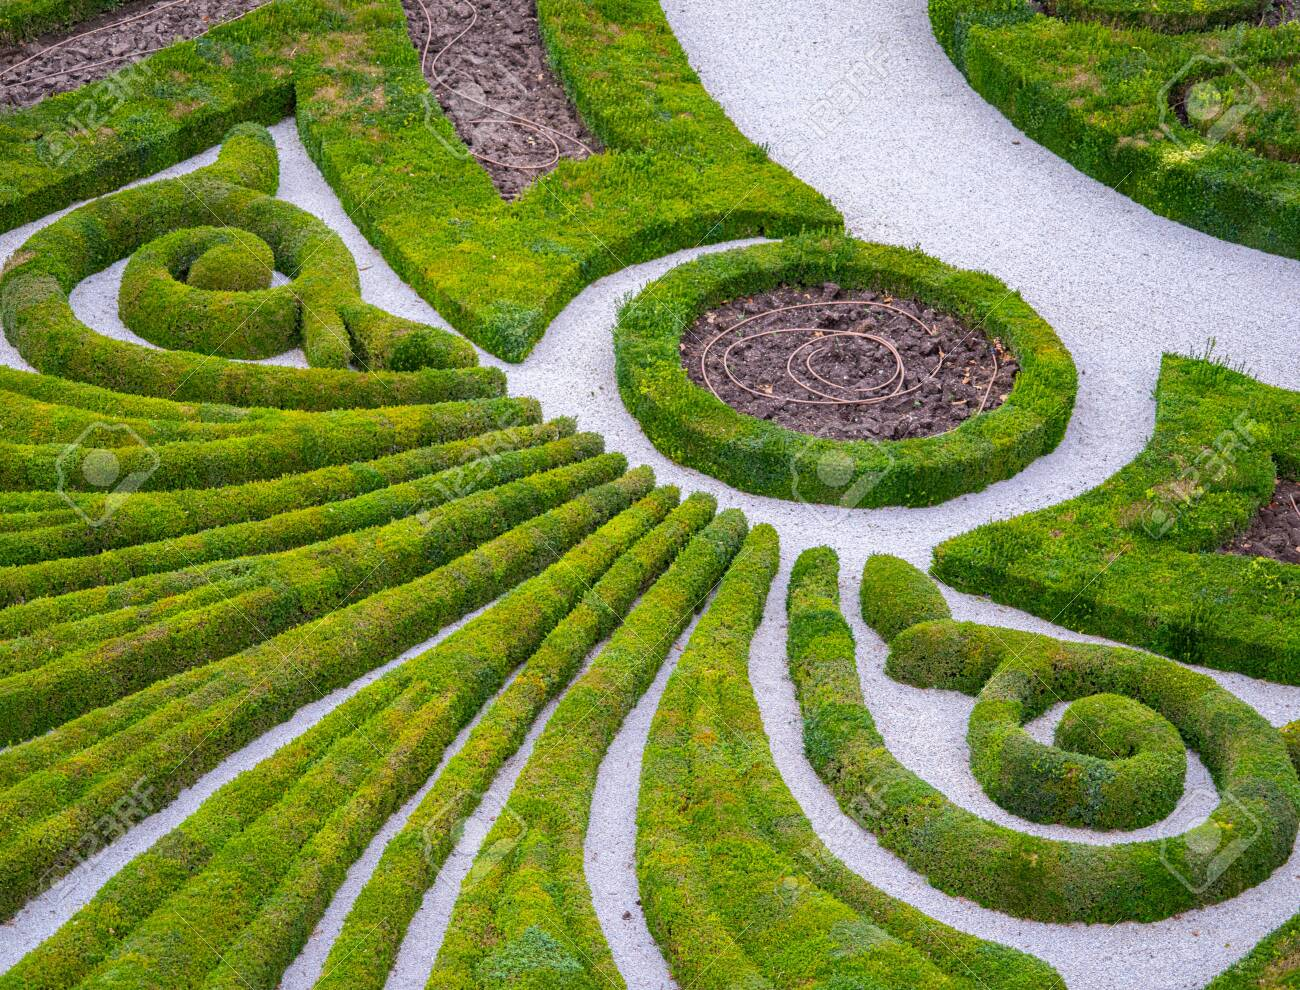 Topiary Cut Into A 2D Design In A Large Garden - 139283216